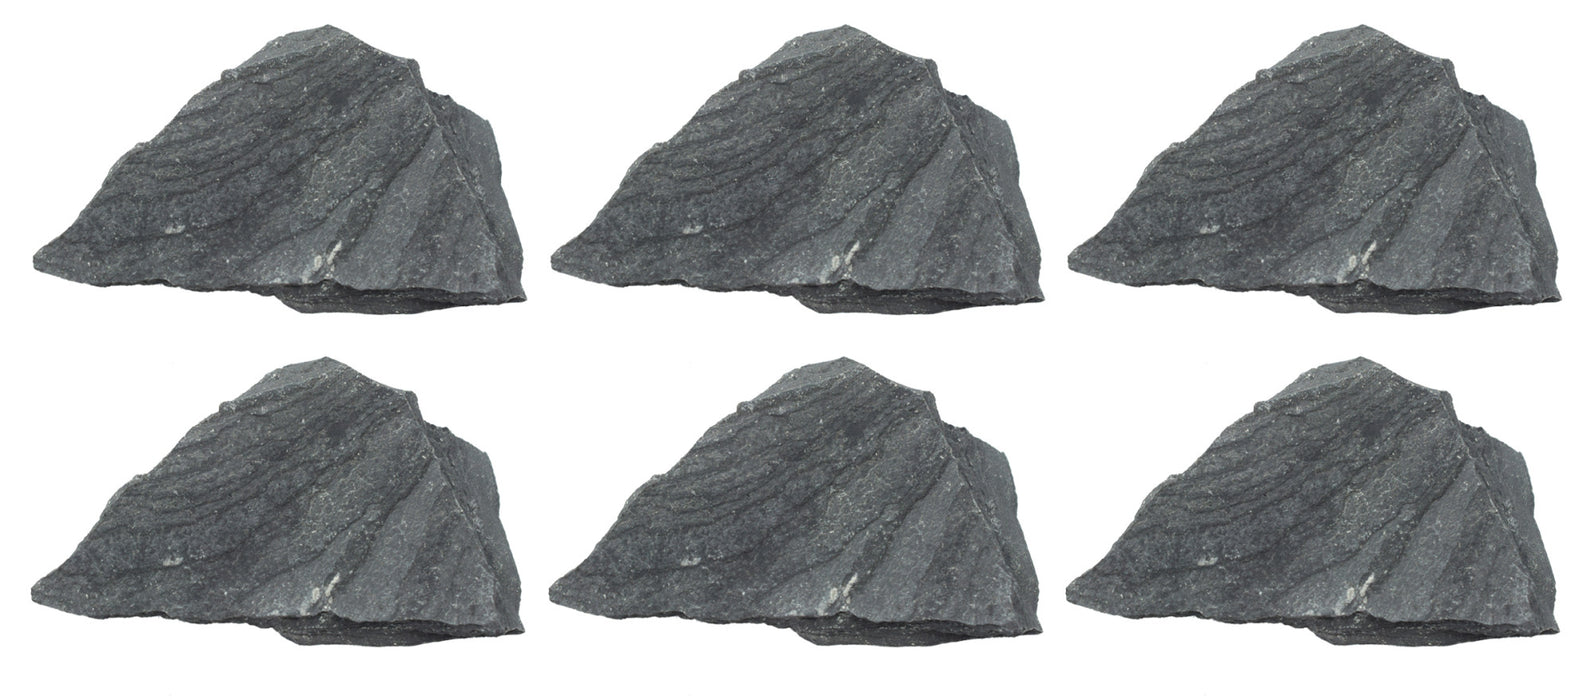 "6PK Raw Slate, Metamorphic Rock Specimens - Approx. 1"" - Geologist Selected & Hand Processed - Great for Science Classrooms - Class Pack - Eisco Labs"